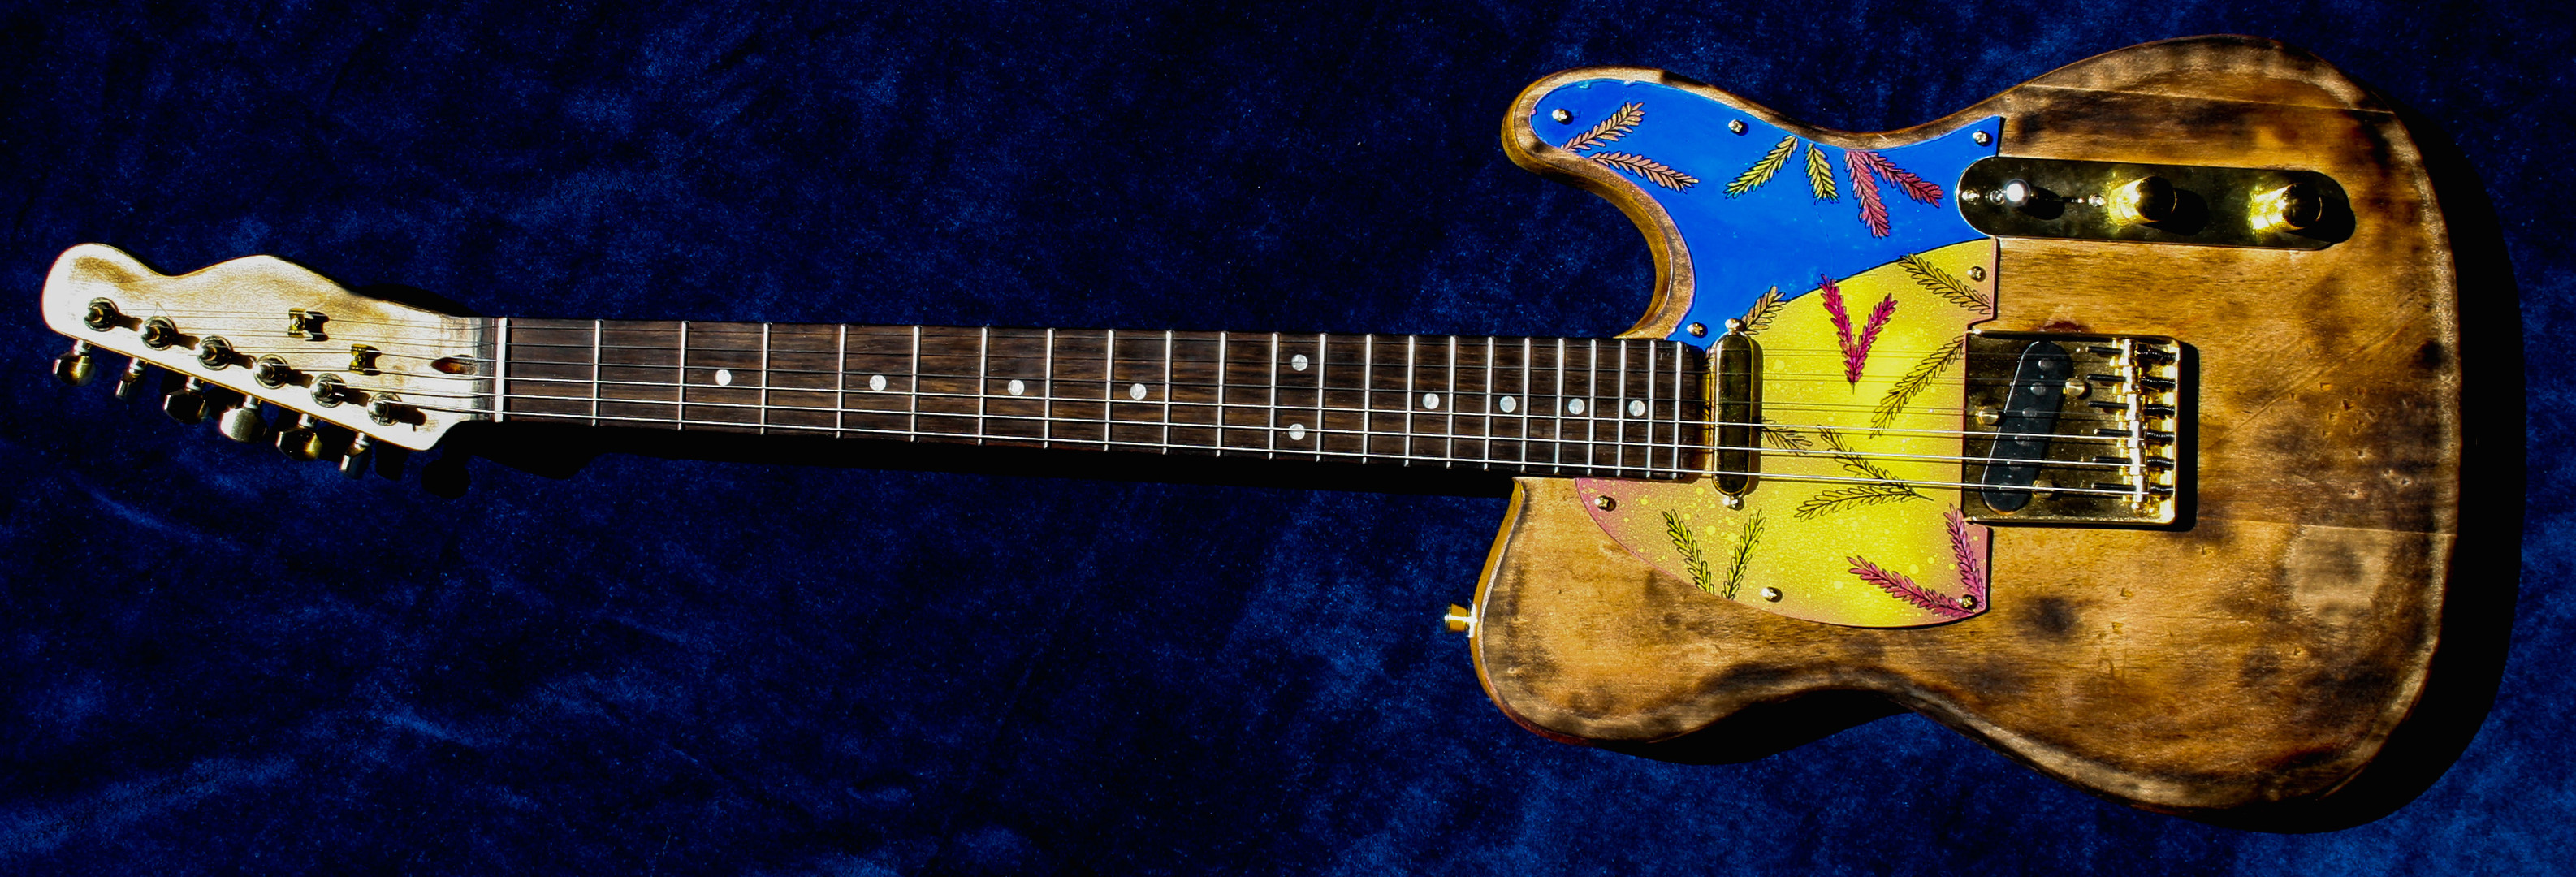 Relictcaster